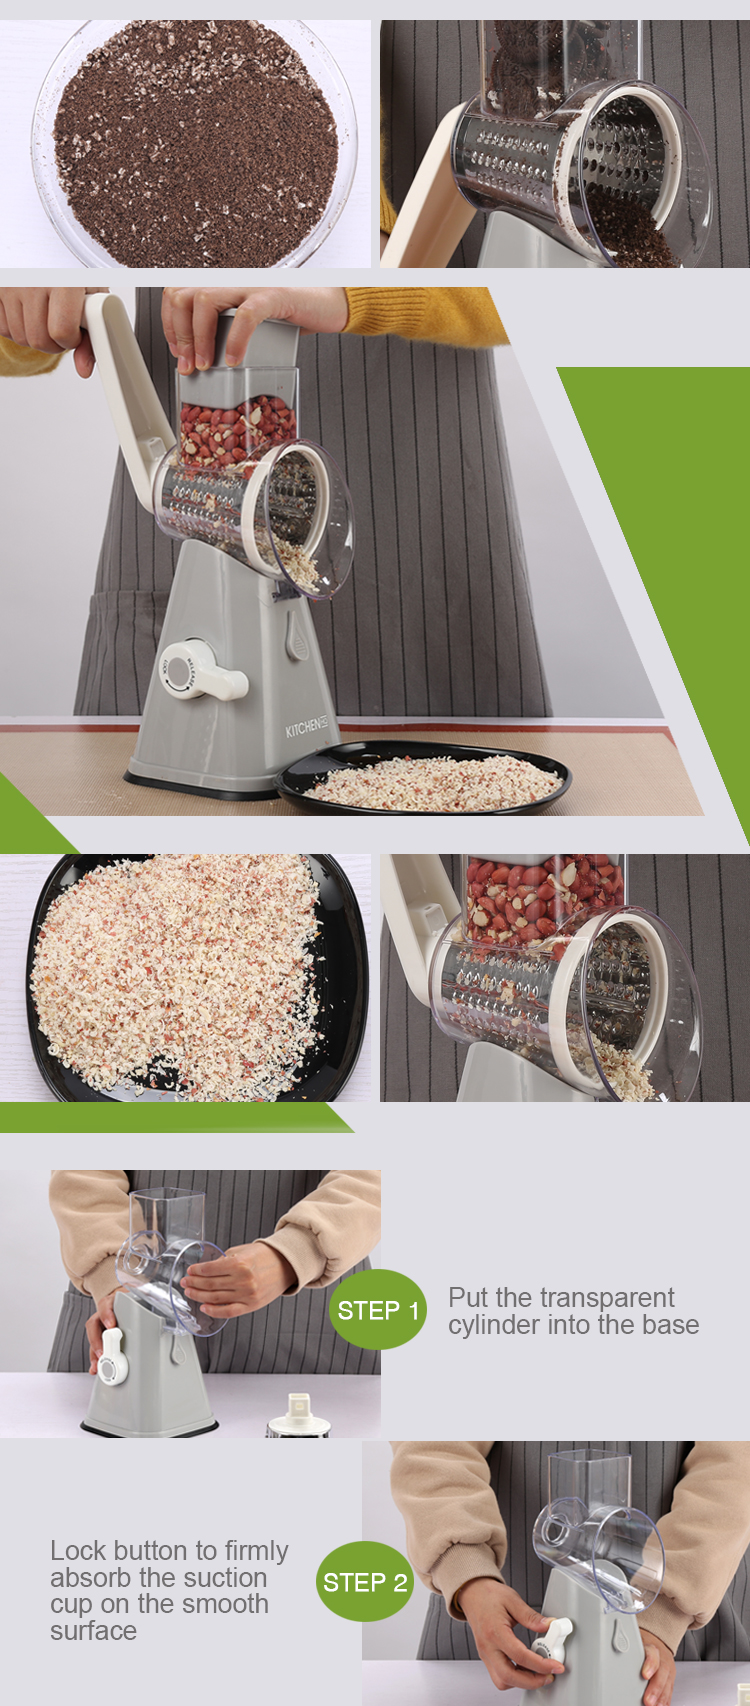 Queijo rotativo Slicer Vegetal Shredder Cutter Chopper Nut com 3 forma intercambiável Tambores de aço inoxidável como visto na tv